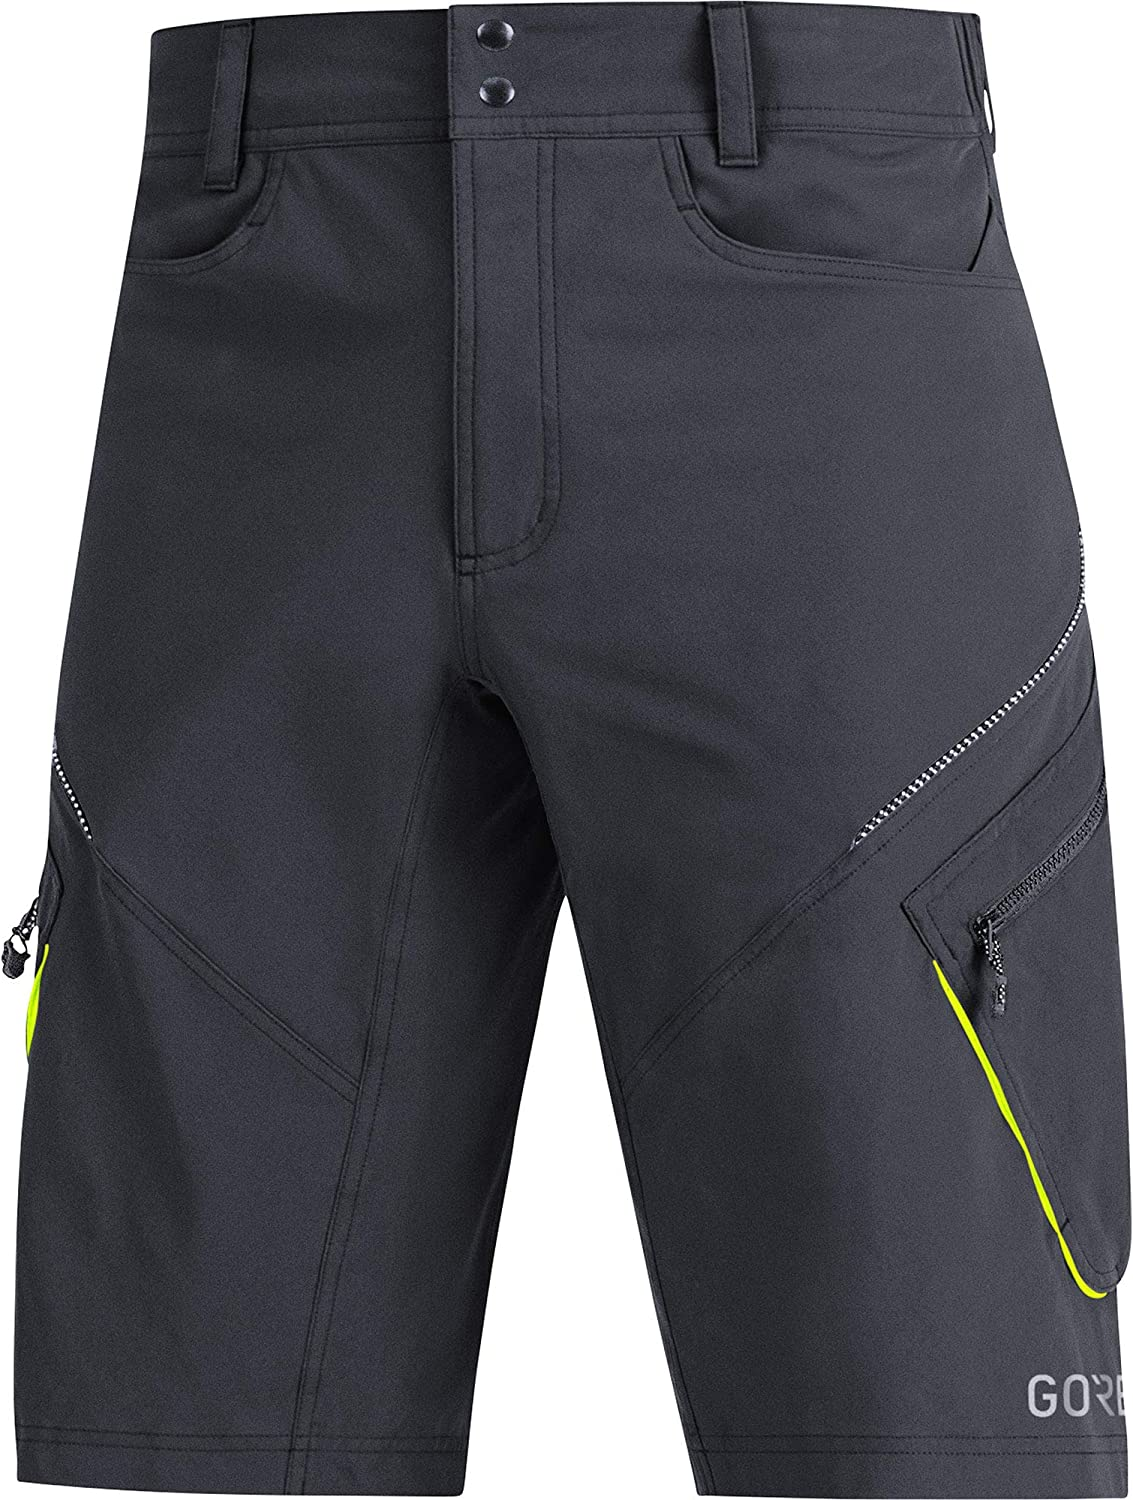 GORE Online overseas limited product WEAR Men's Breathable Shorts Bike Mountain